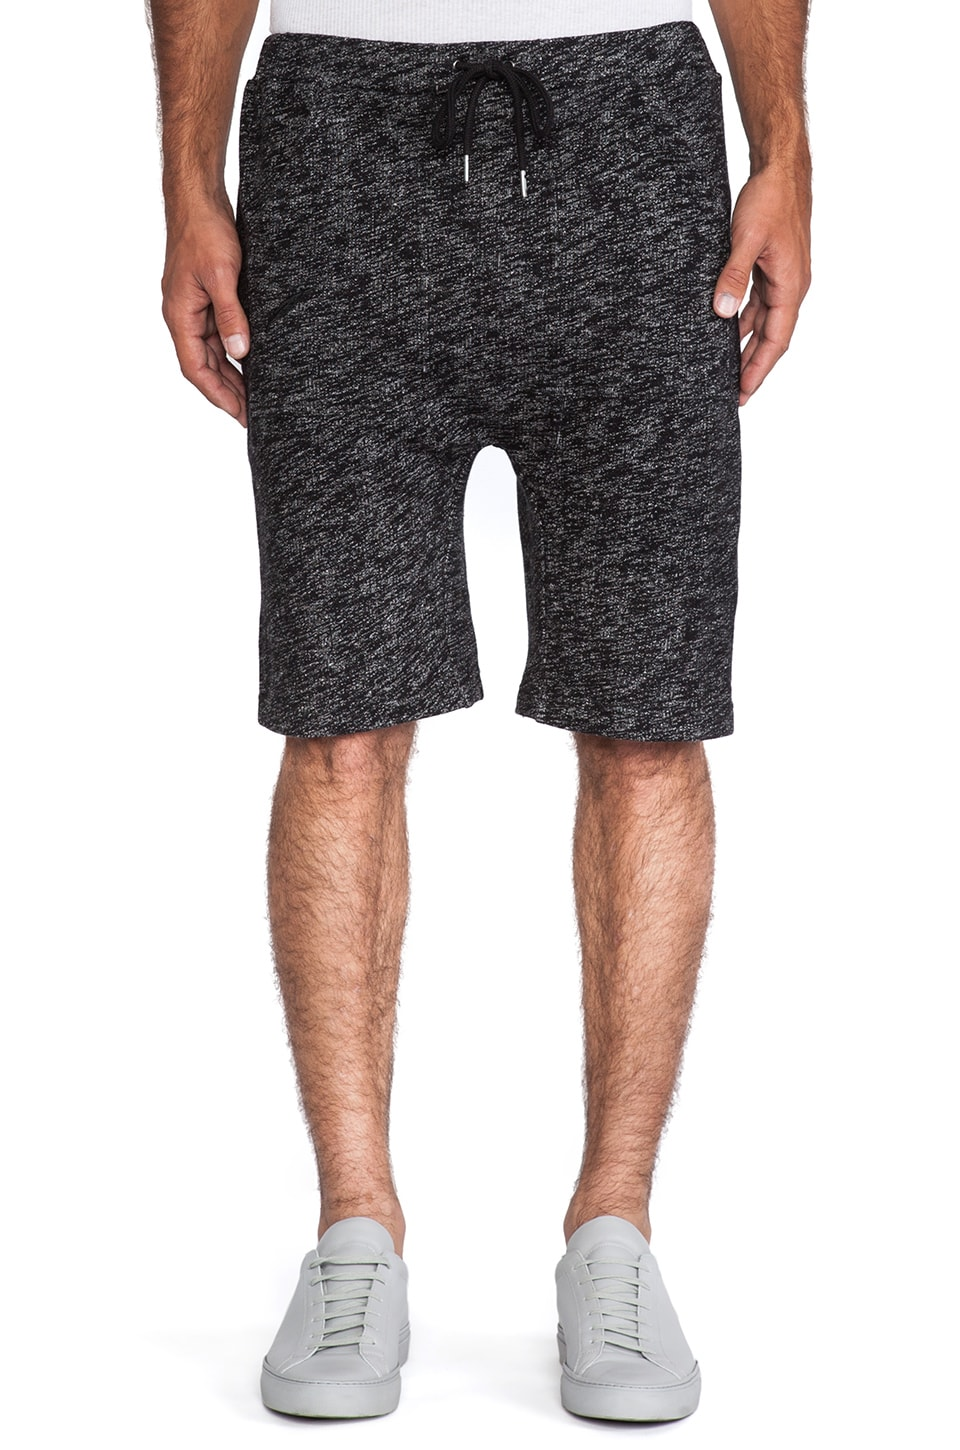 Publish Chase Short in Black